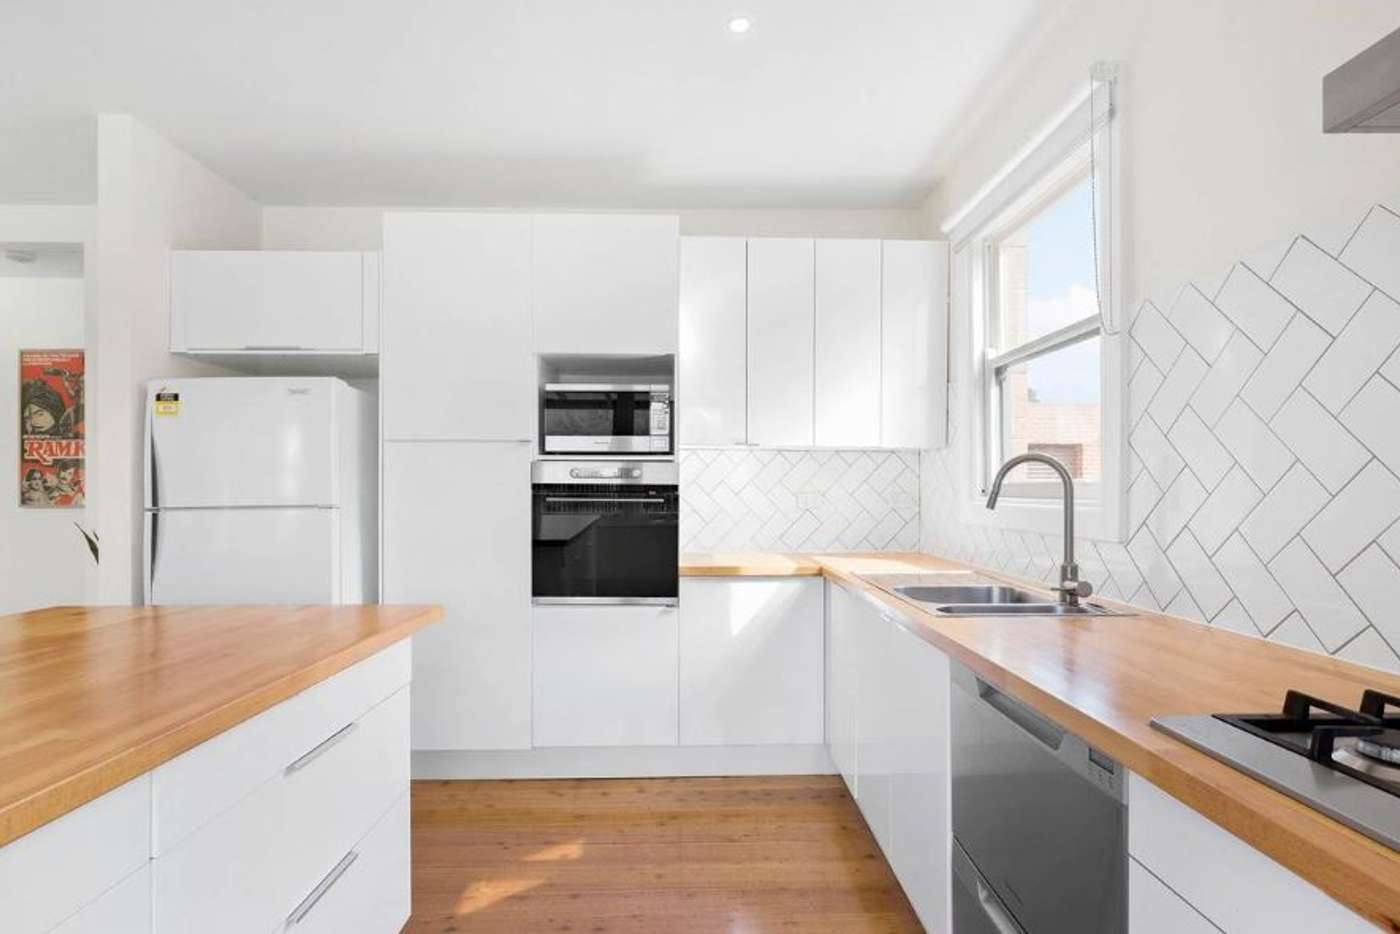 Fifth view of Homely house listing, 141 Albert Street, Preston VIC 3072